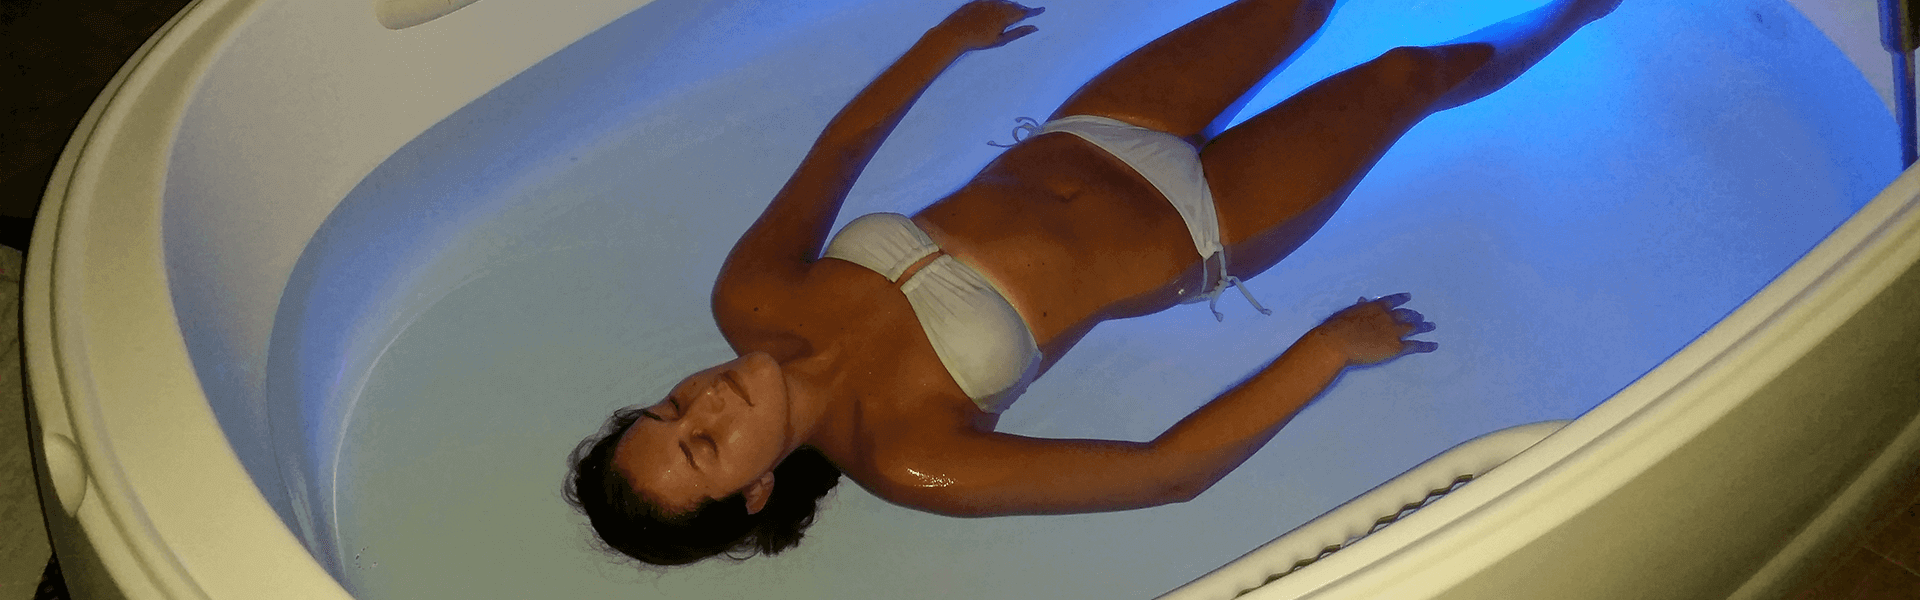 STRESS RELIEVING